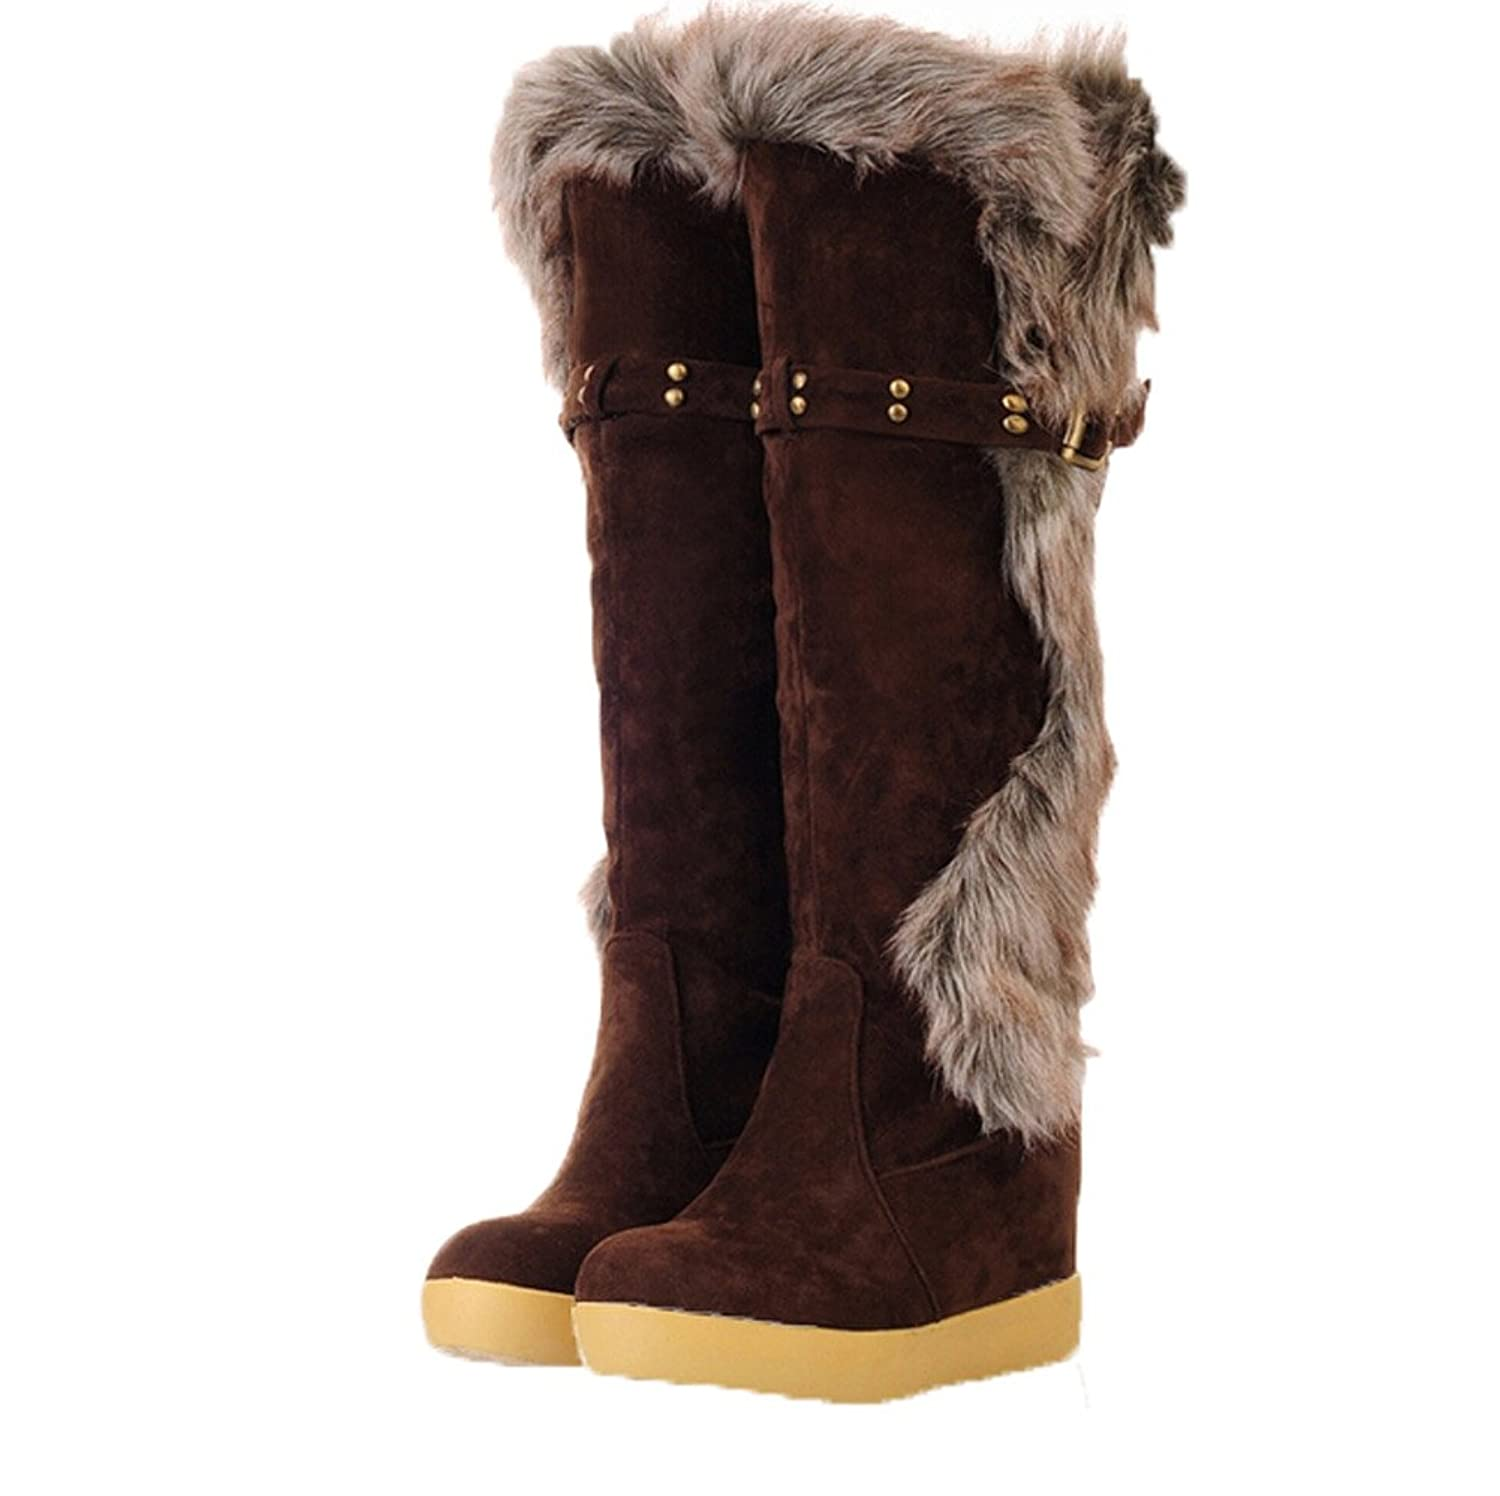 Womens Fashion Faux-fur Low Top Knee High Snow Boots